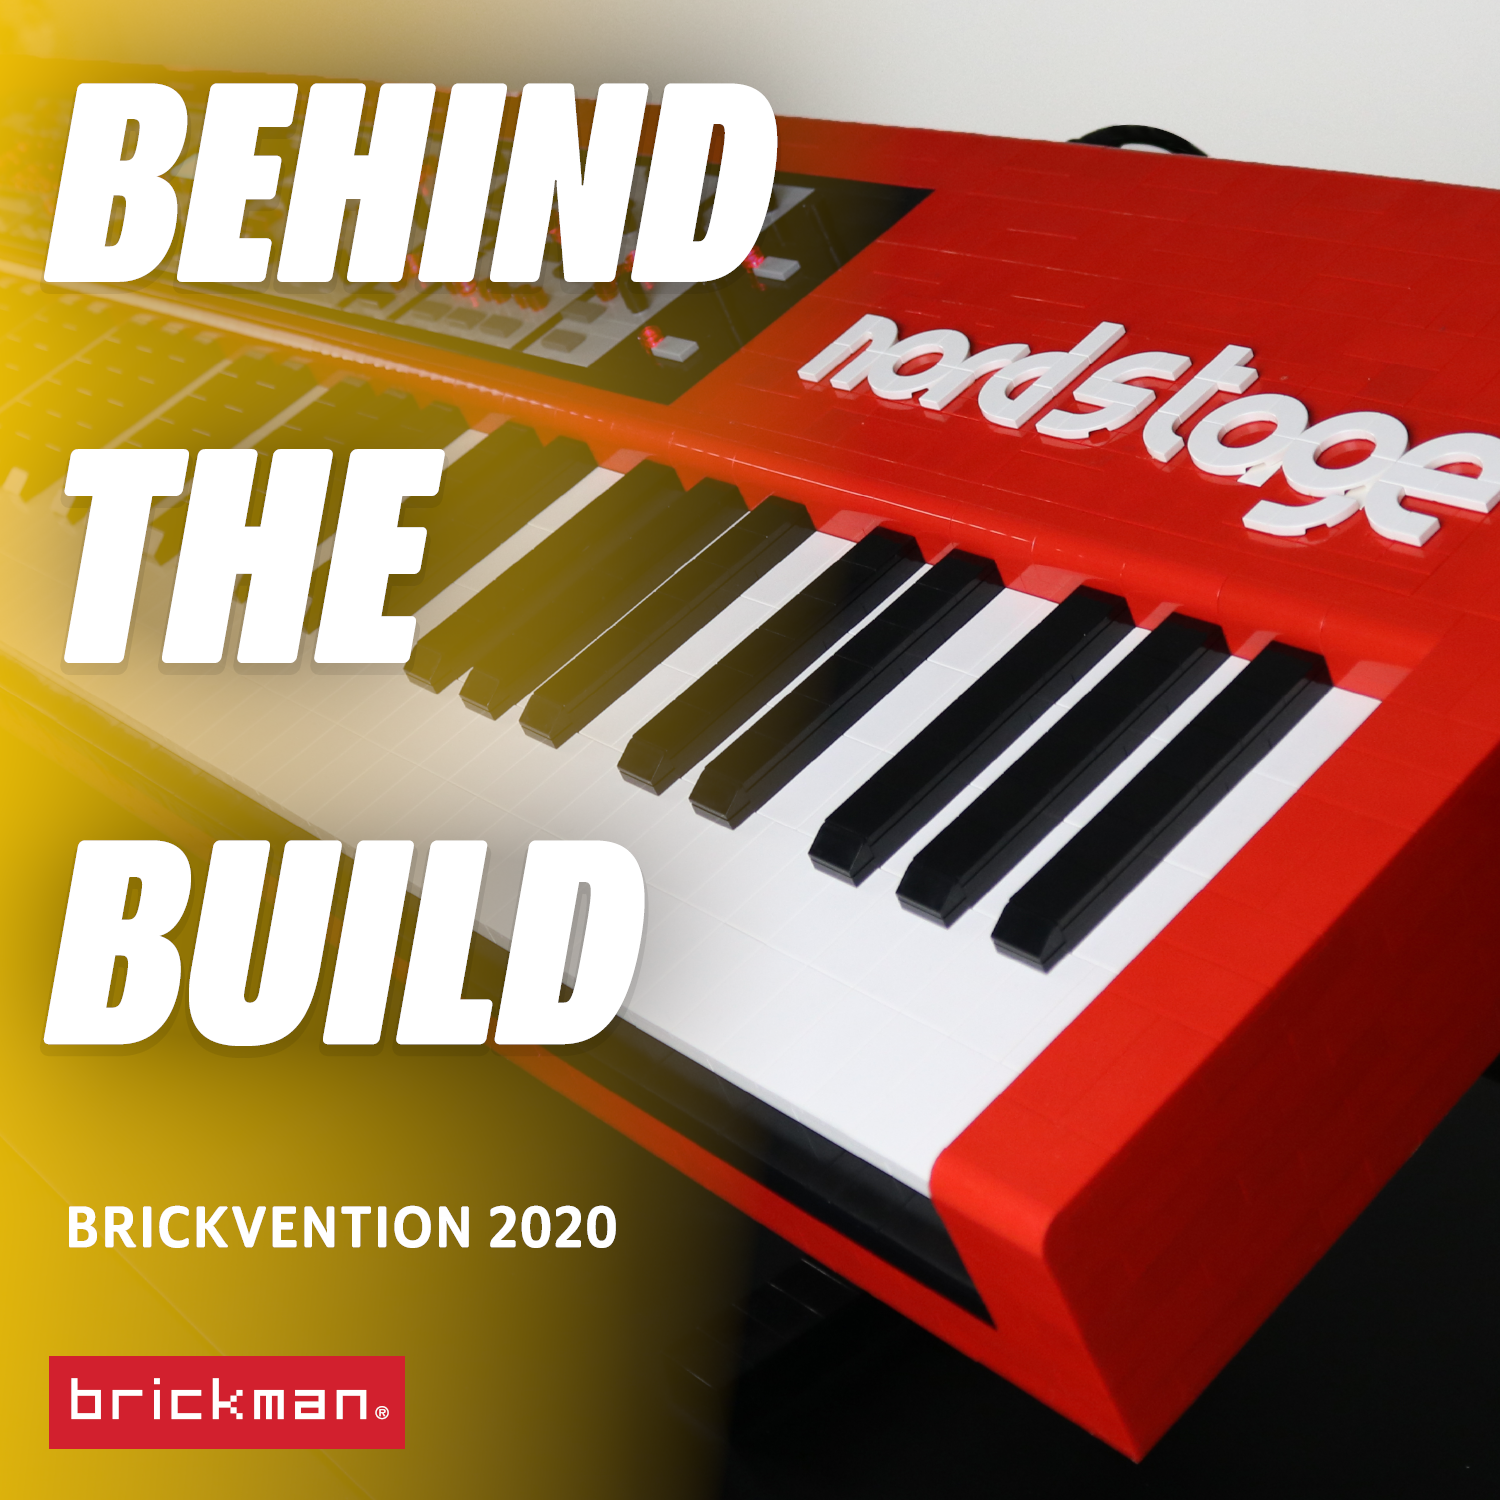 Brickvention 2020 Spotlight: LEGO® Brick Nordstage keyboard